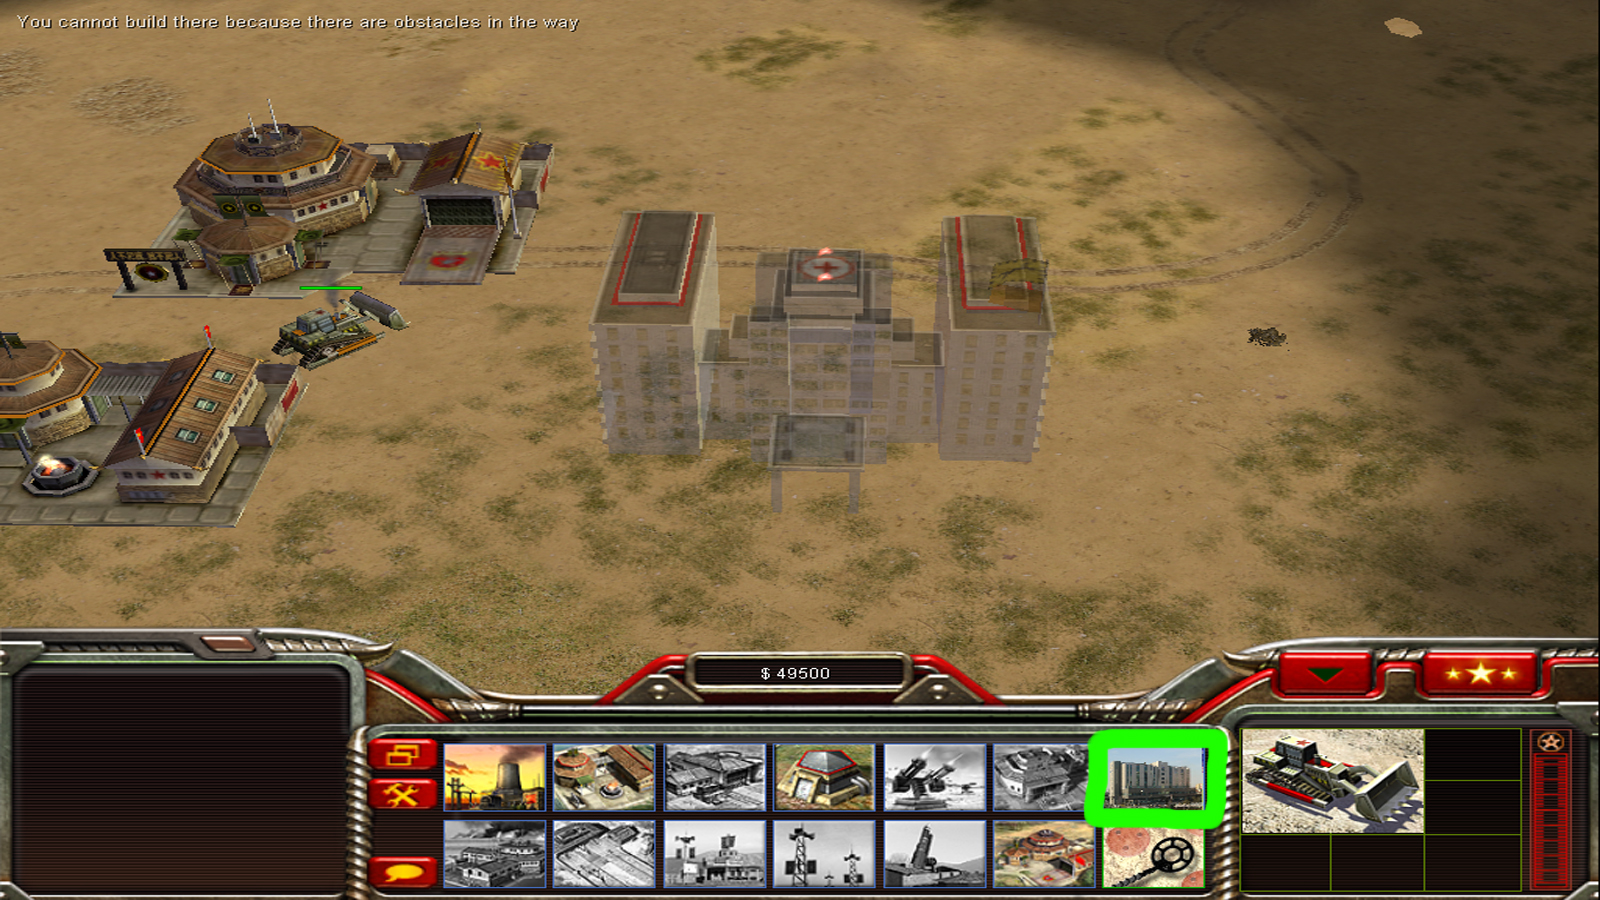 command and conquer generals 2 free download full version windows 10